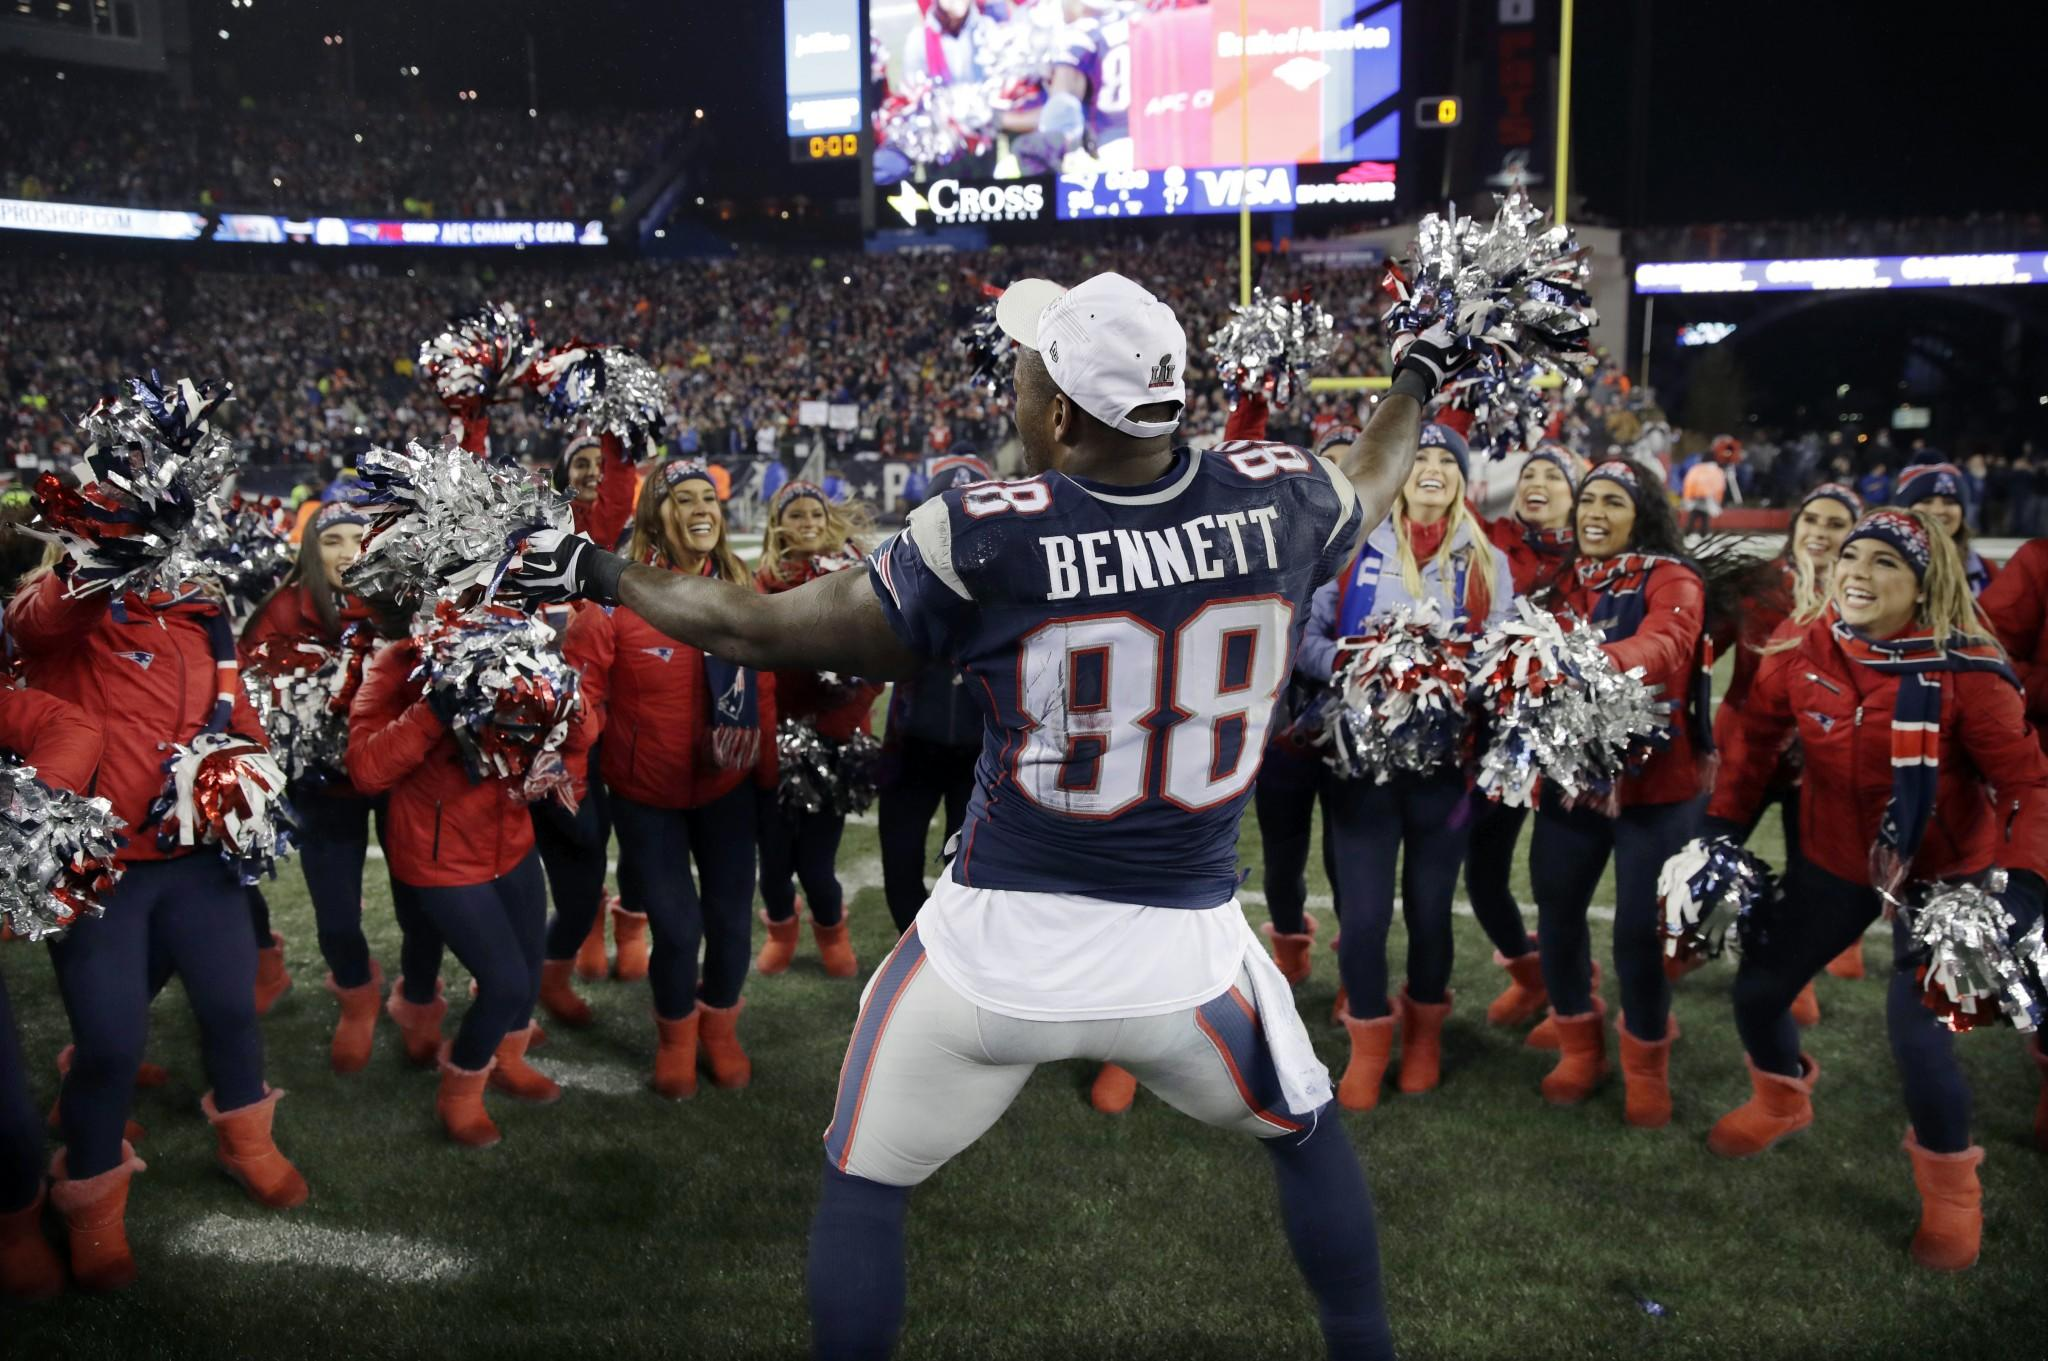 No one had more fun than Martellus Bennett during Patriots AFC